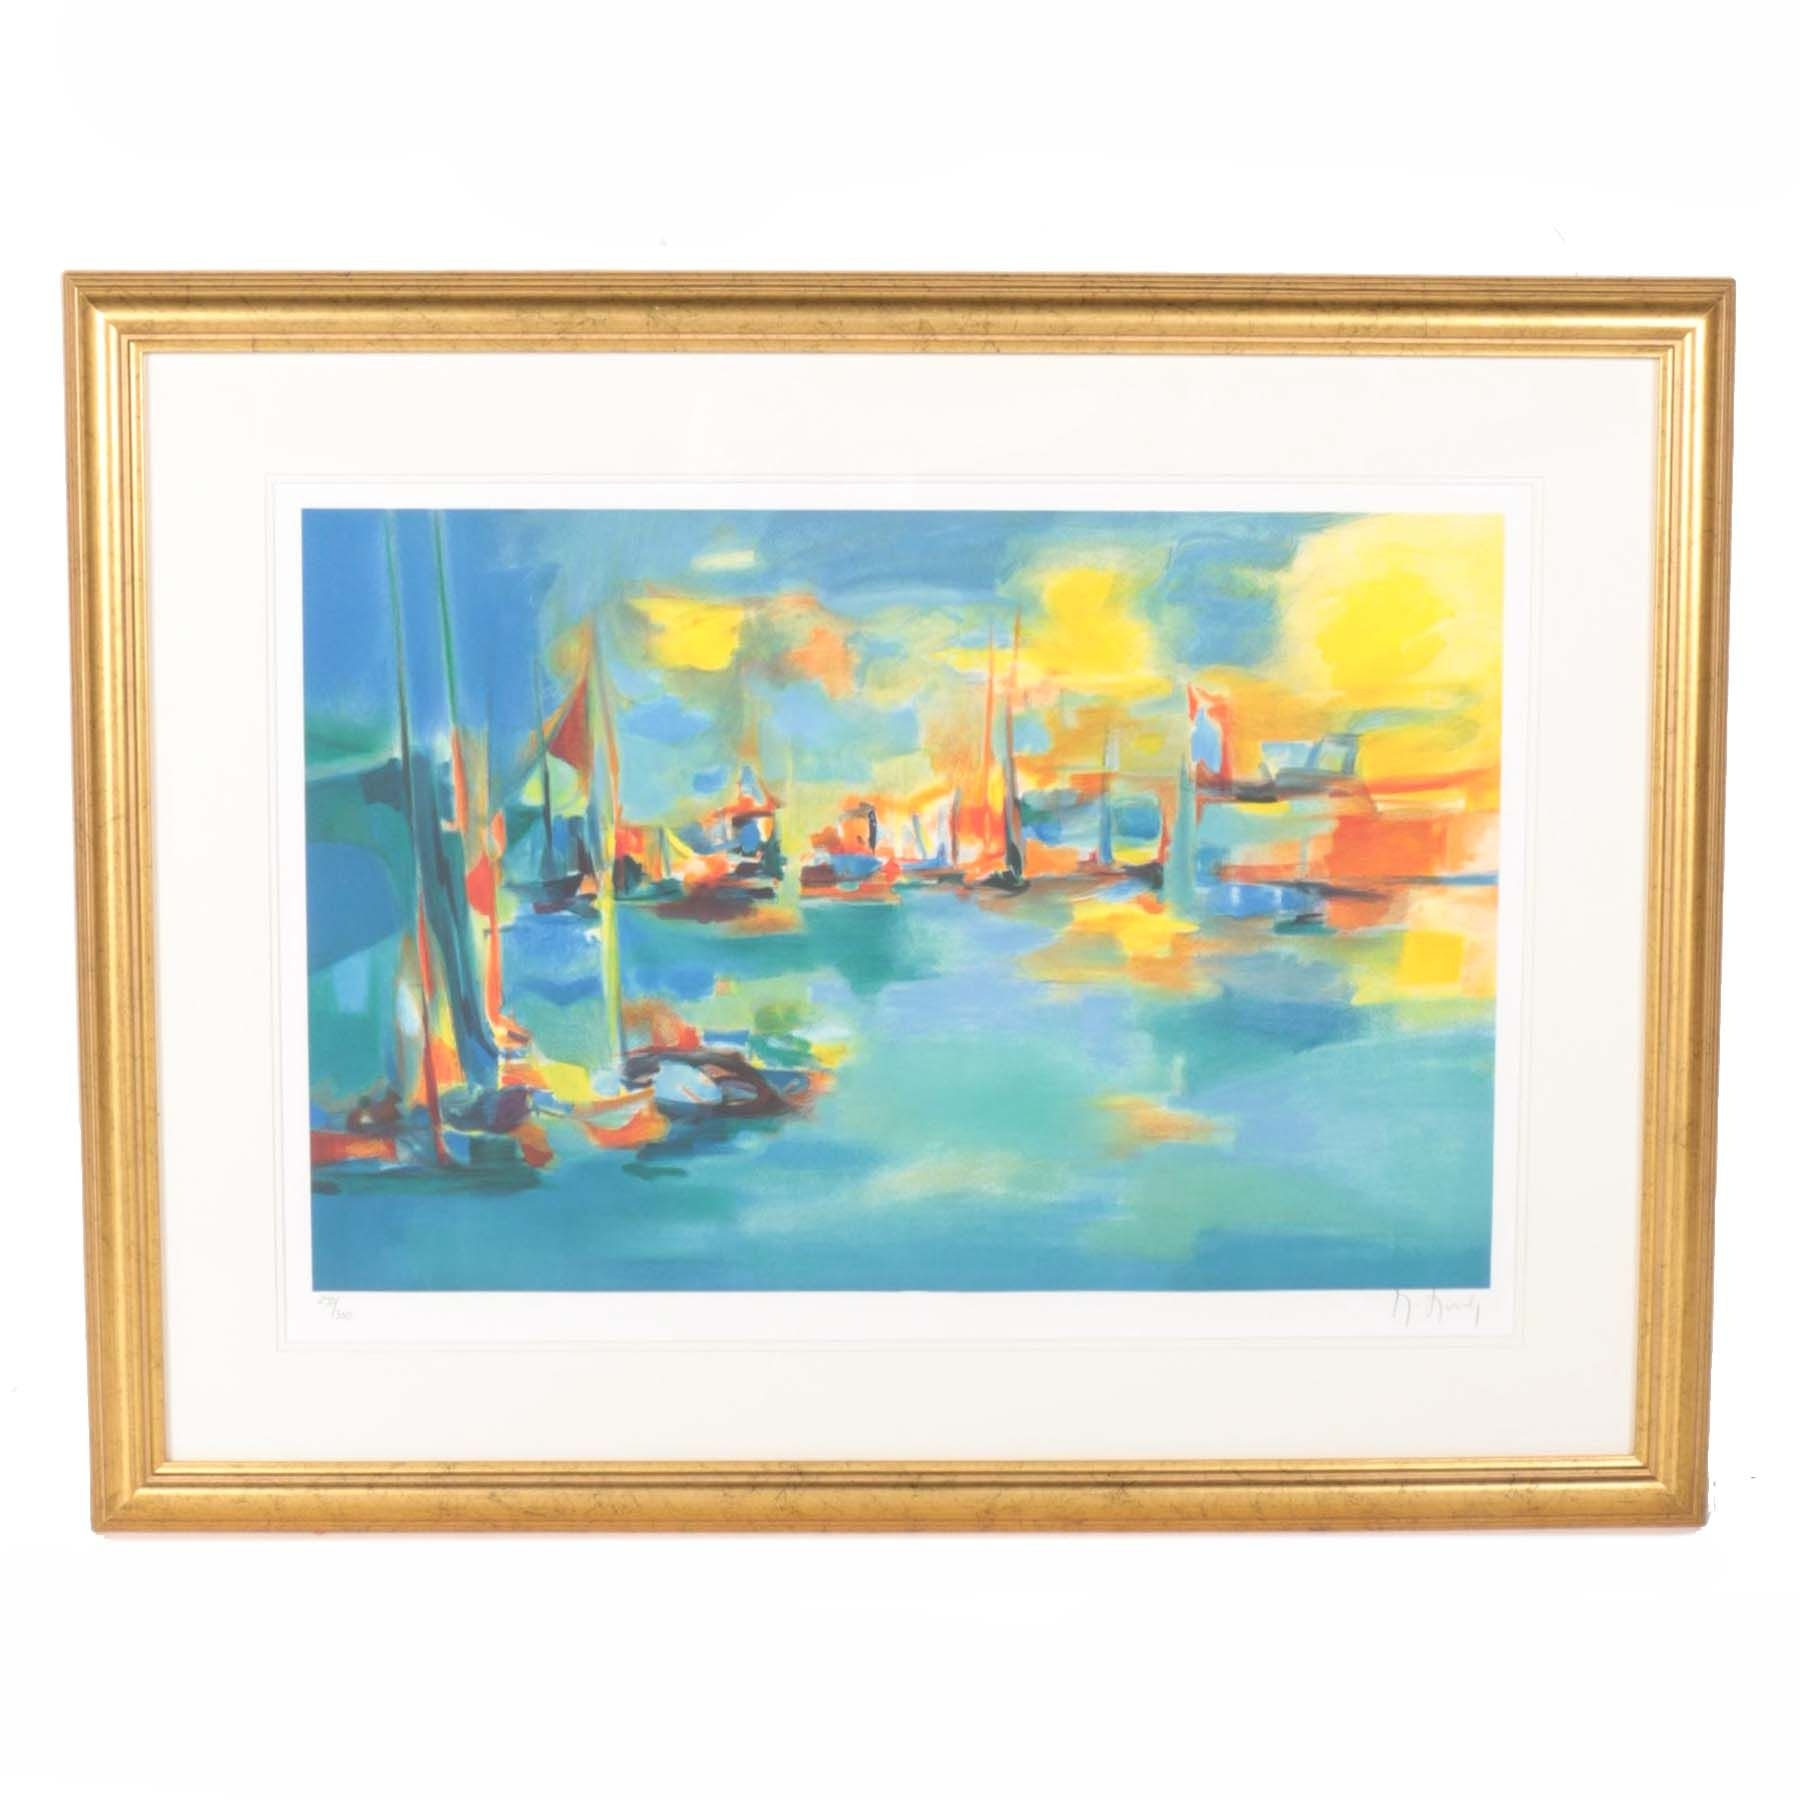 Marcel Mouly Limited Edition Lithograph of a Waterscape